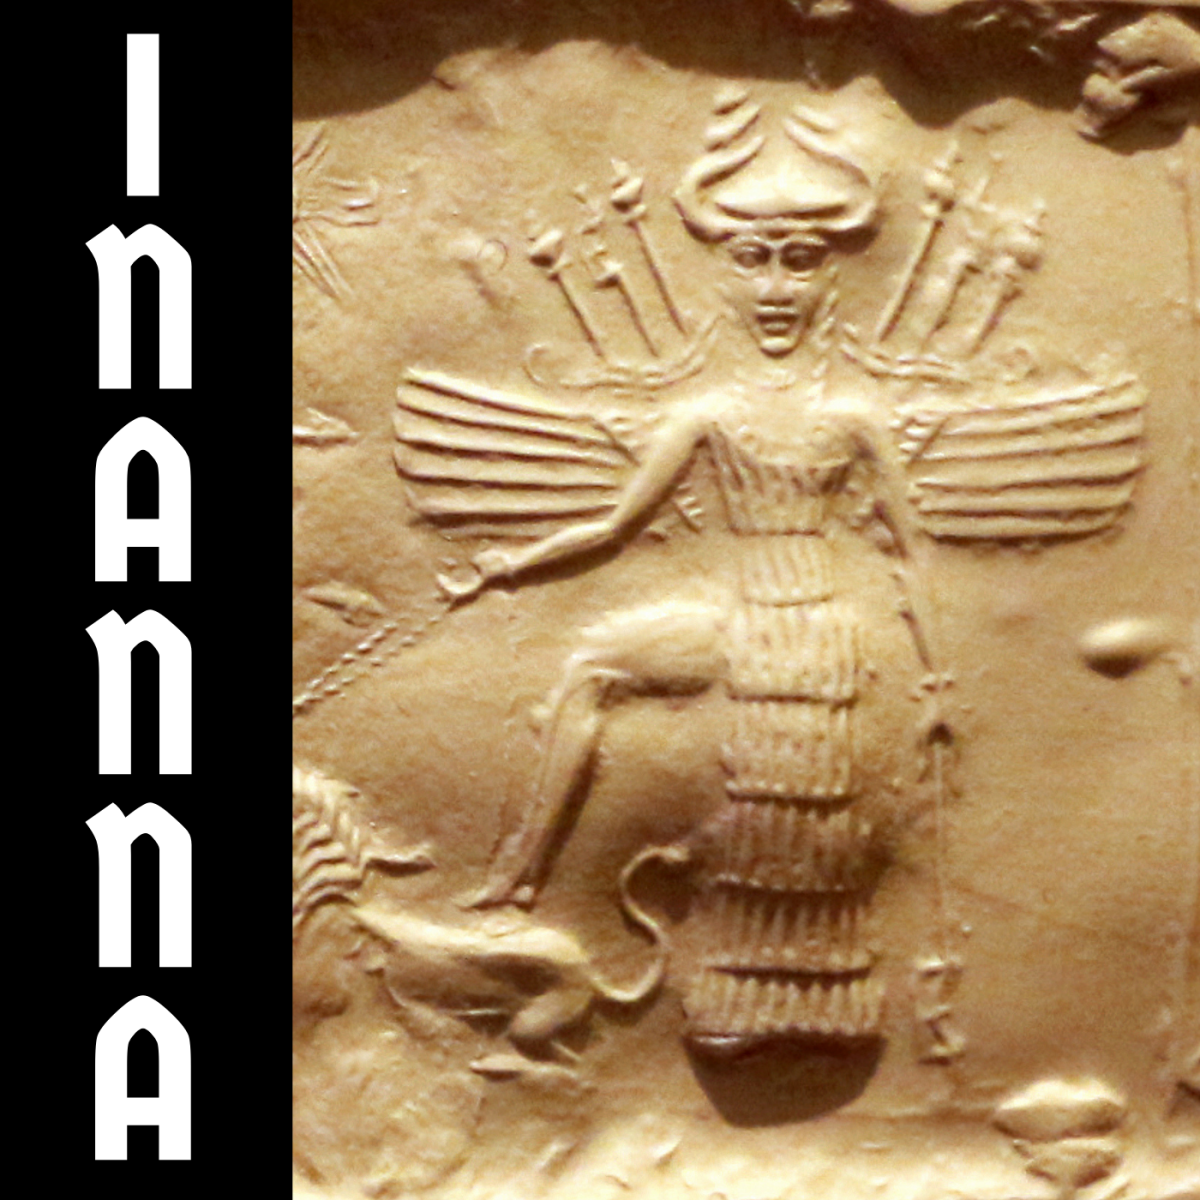 Inanna tends to kill or sacrifice most of her lovers.